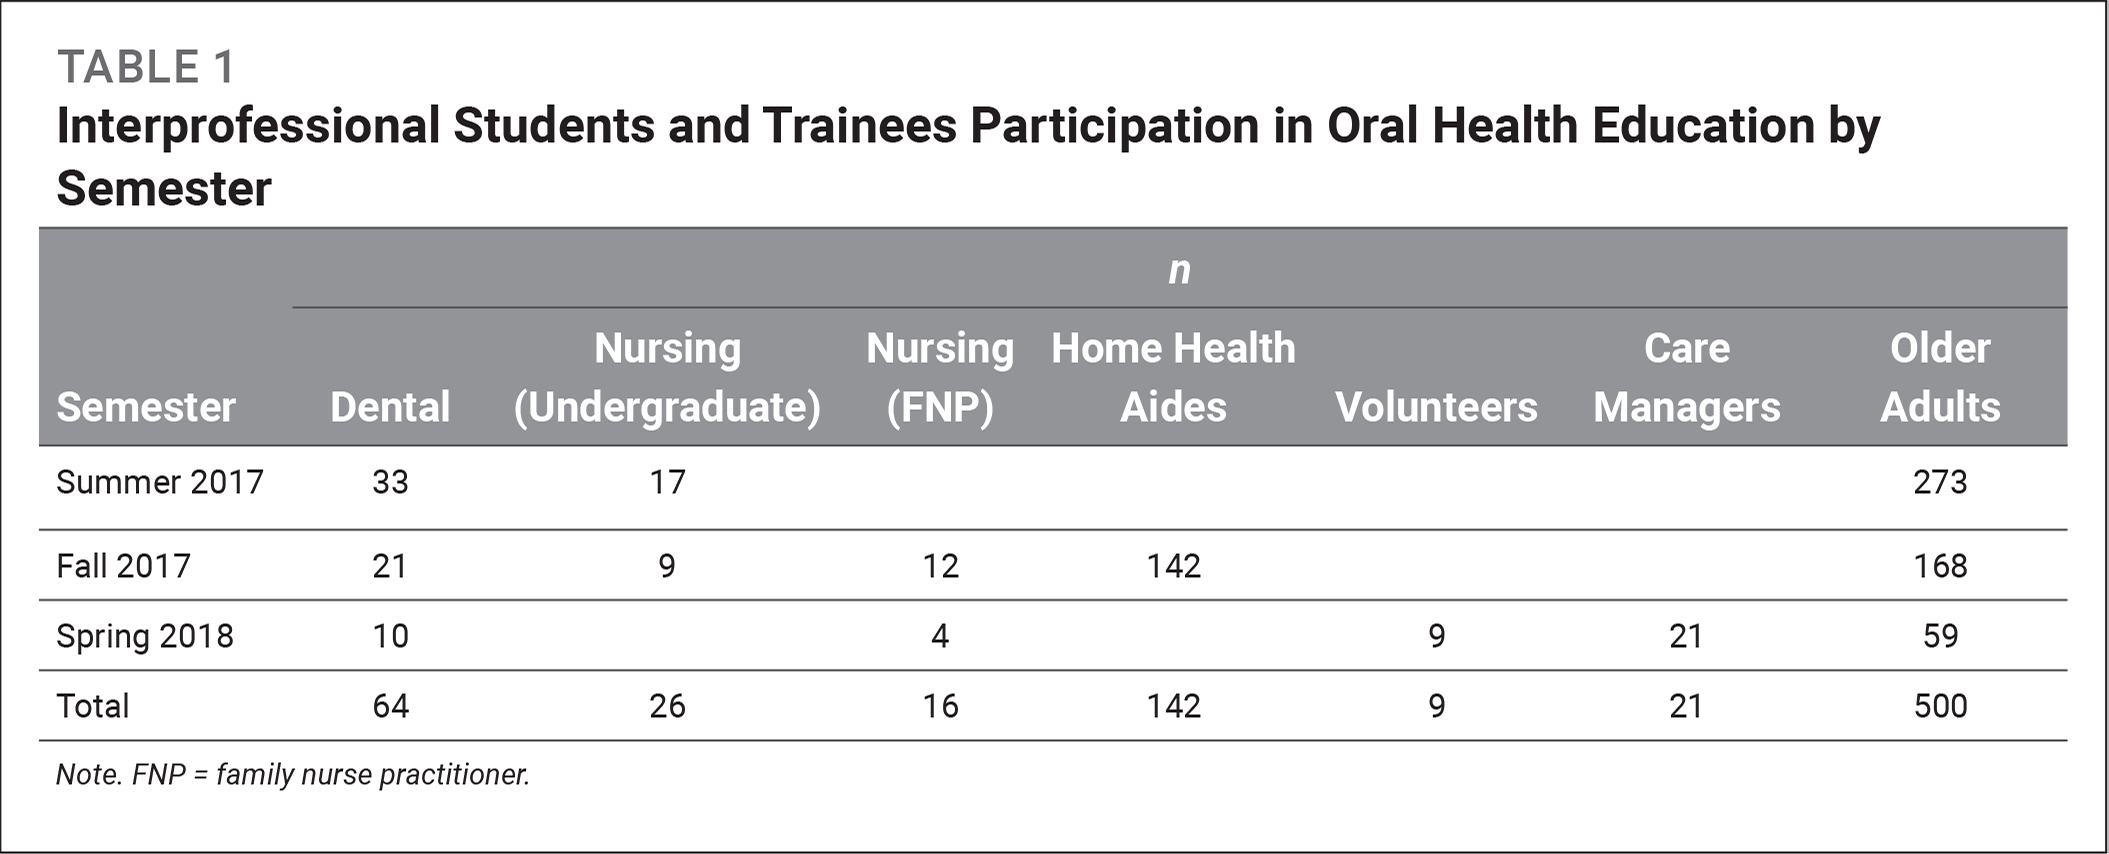 Interprofessional Students and Trainees Participation in Oral Health Education by Semester